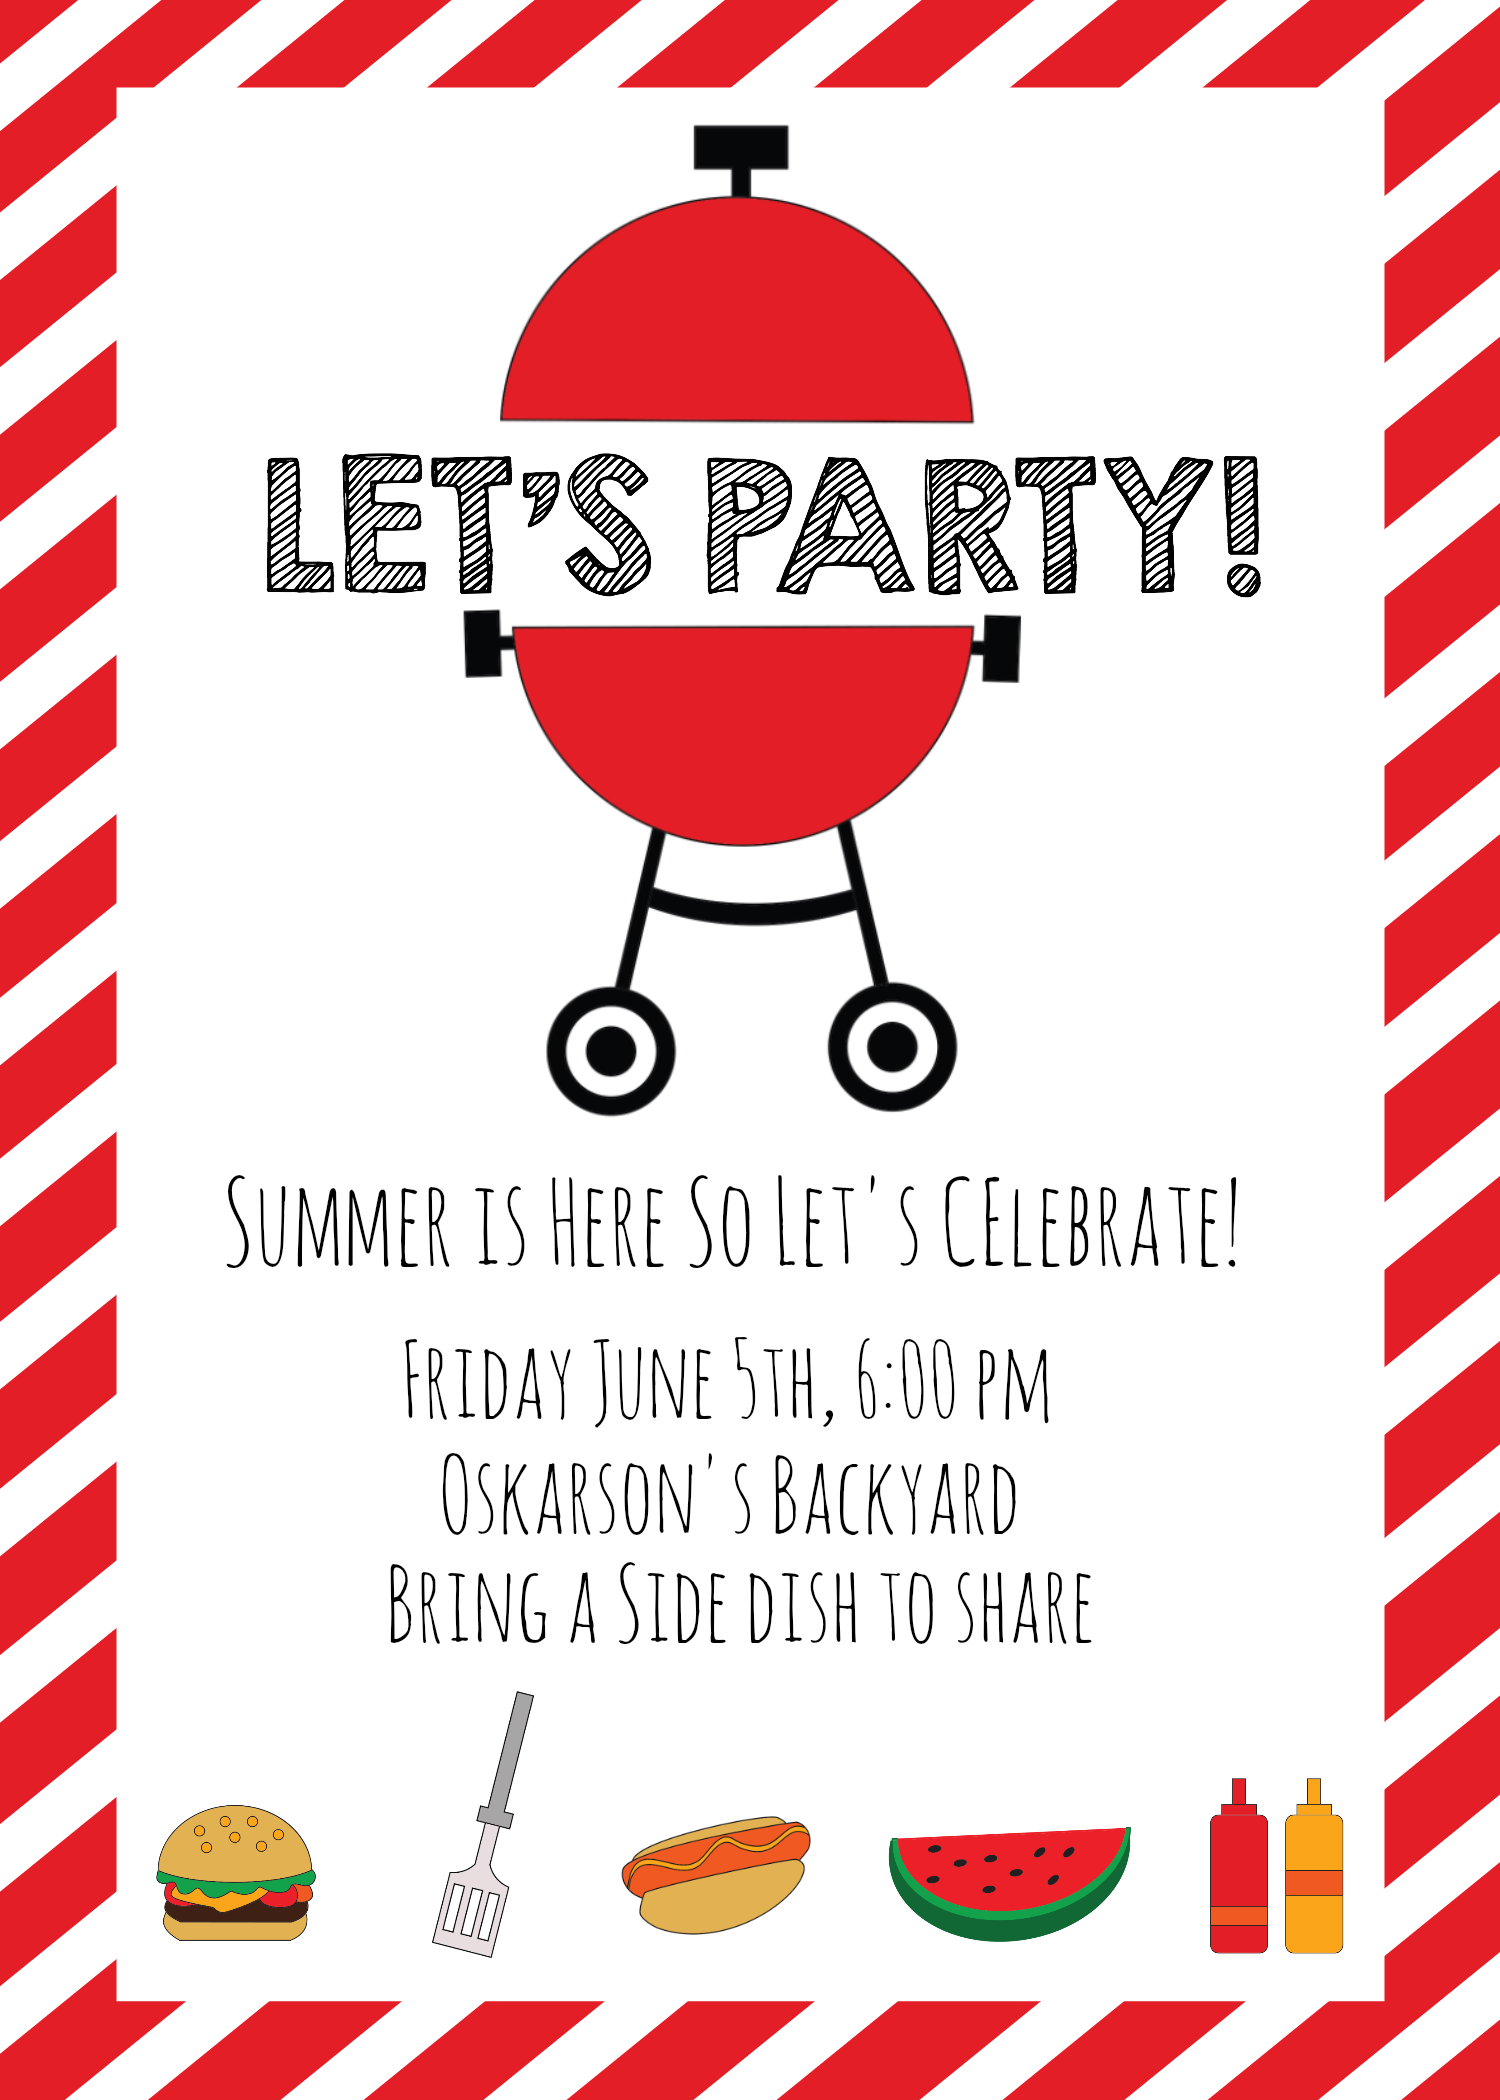 Summer BBQ Invitations and Ideas | Summer, Relief society and Birthdays